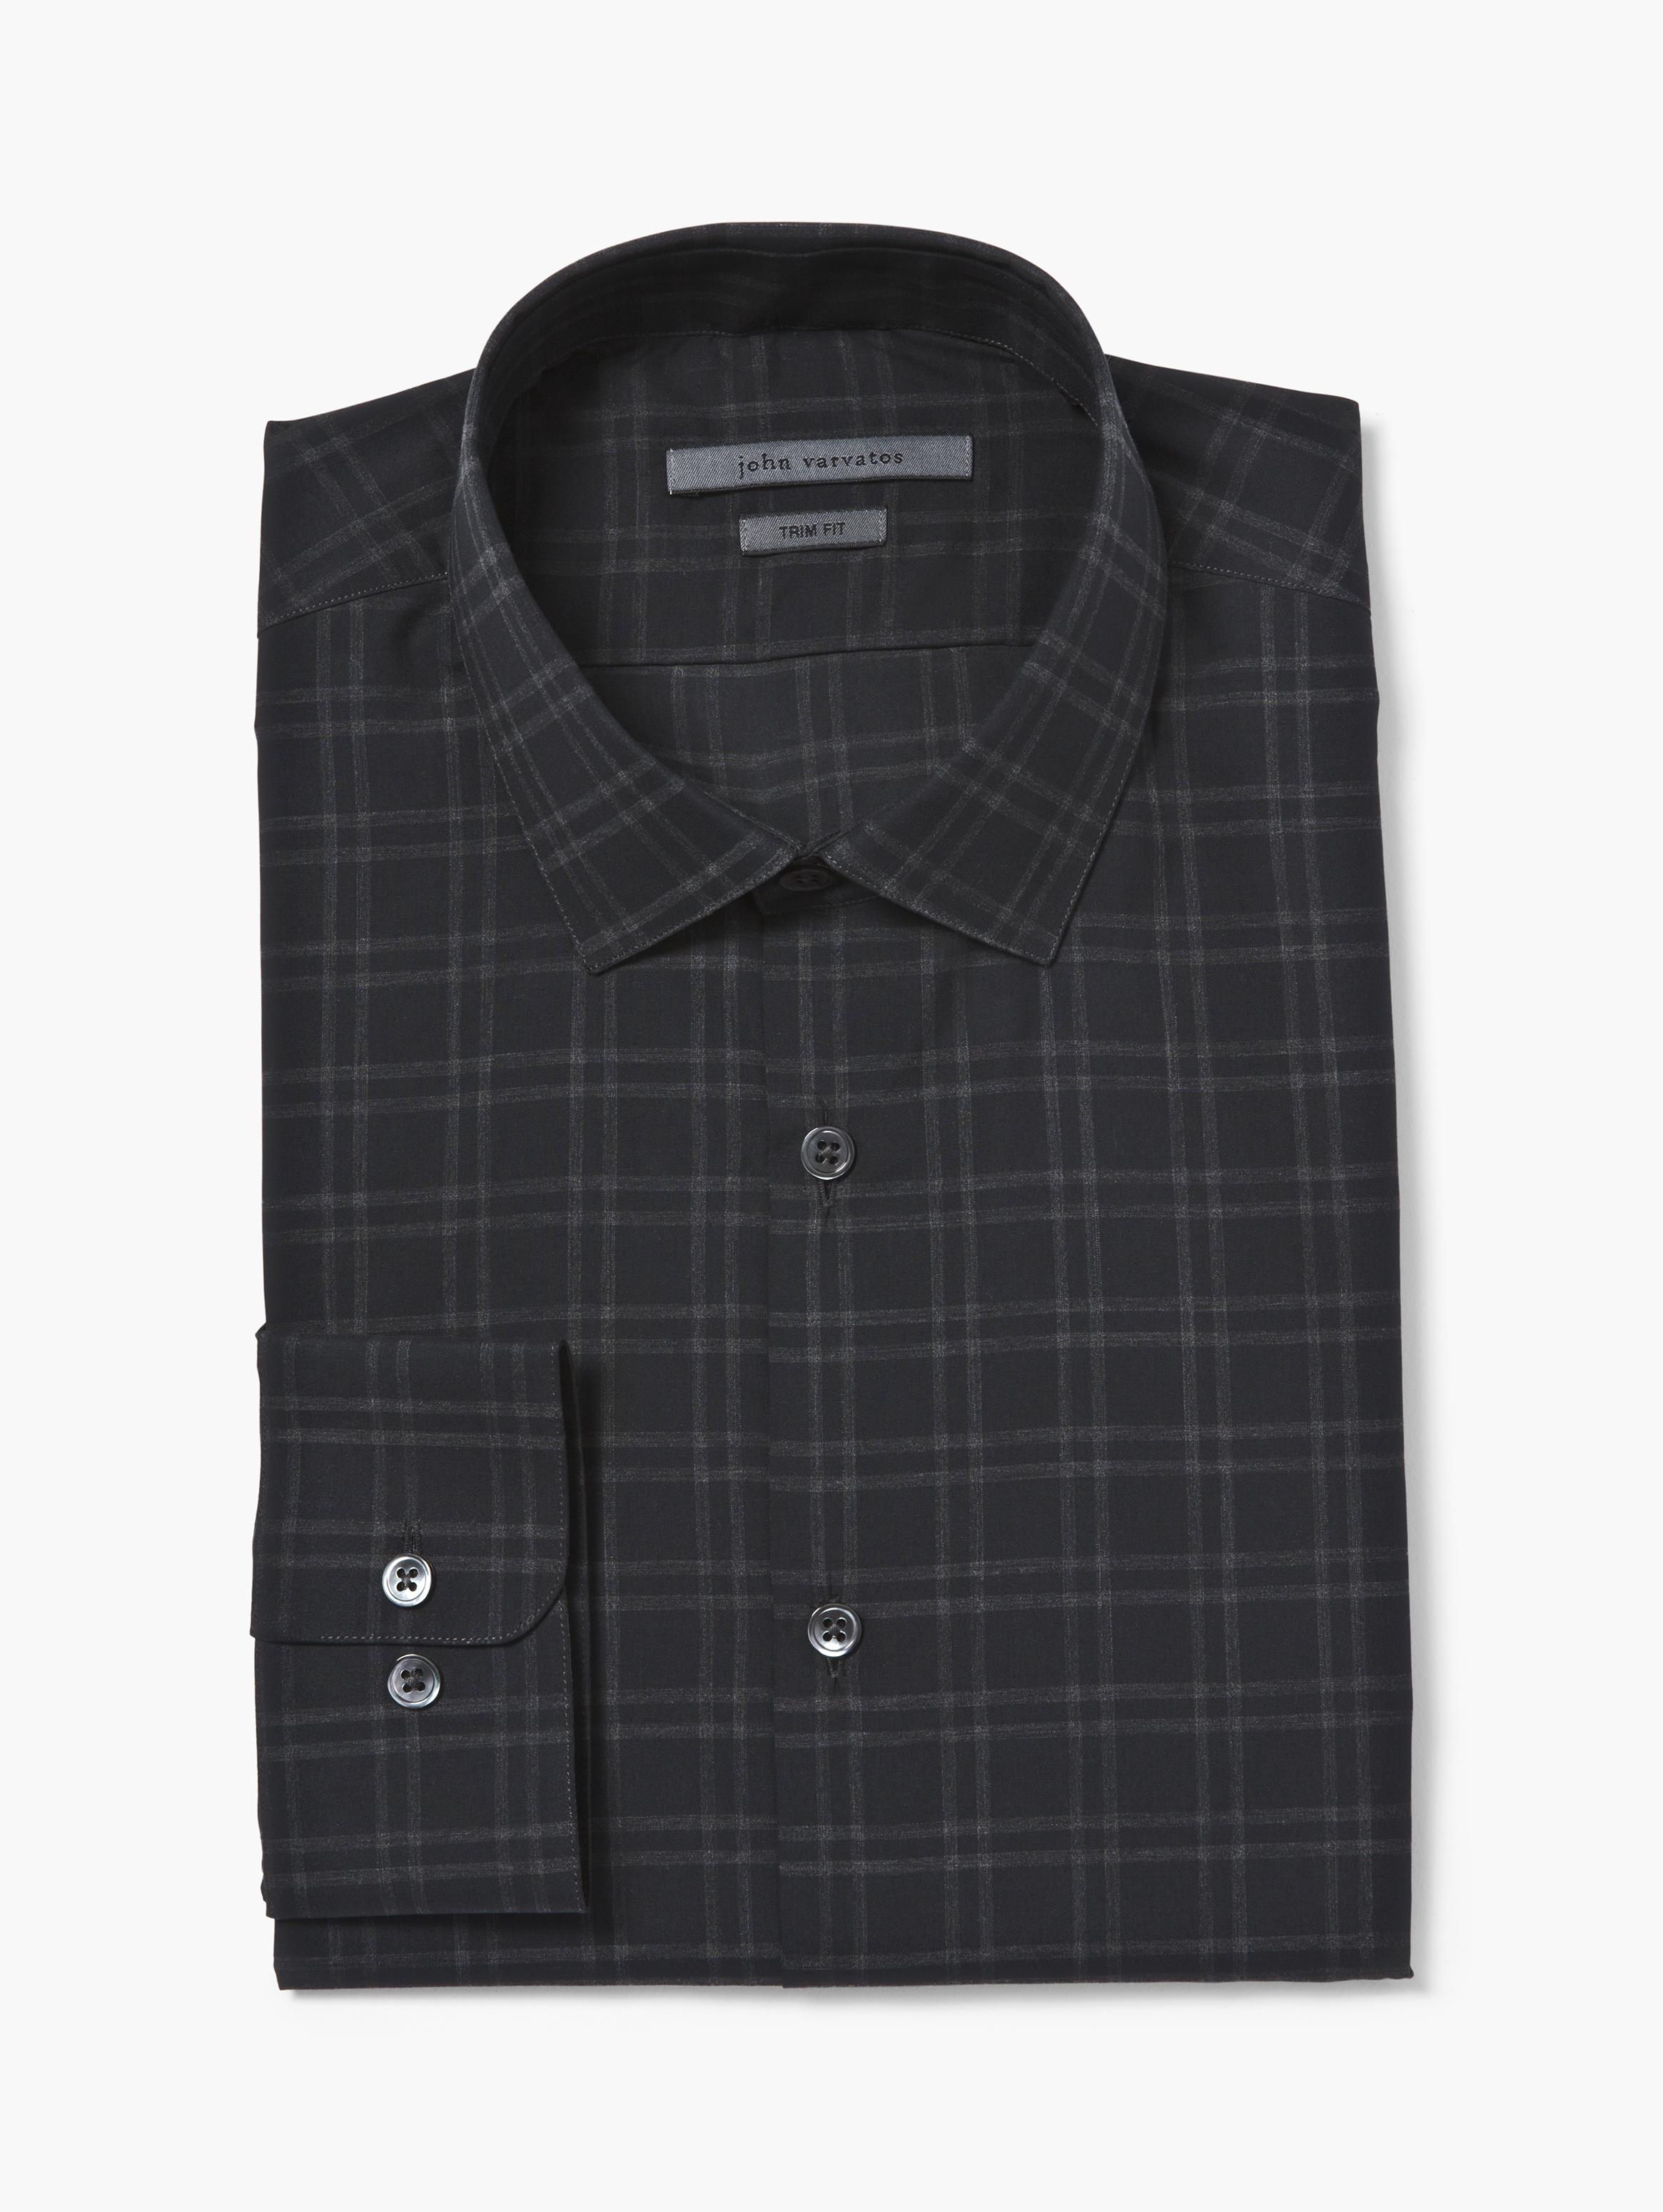 Trim Fit Dress Shirt